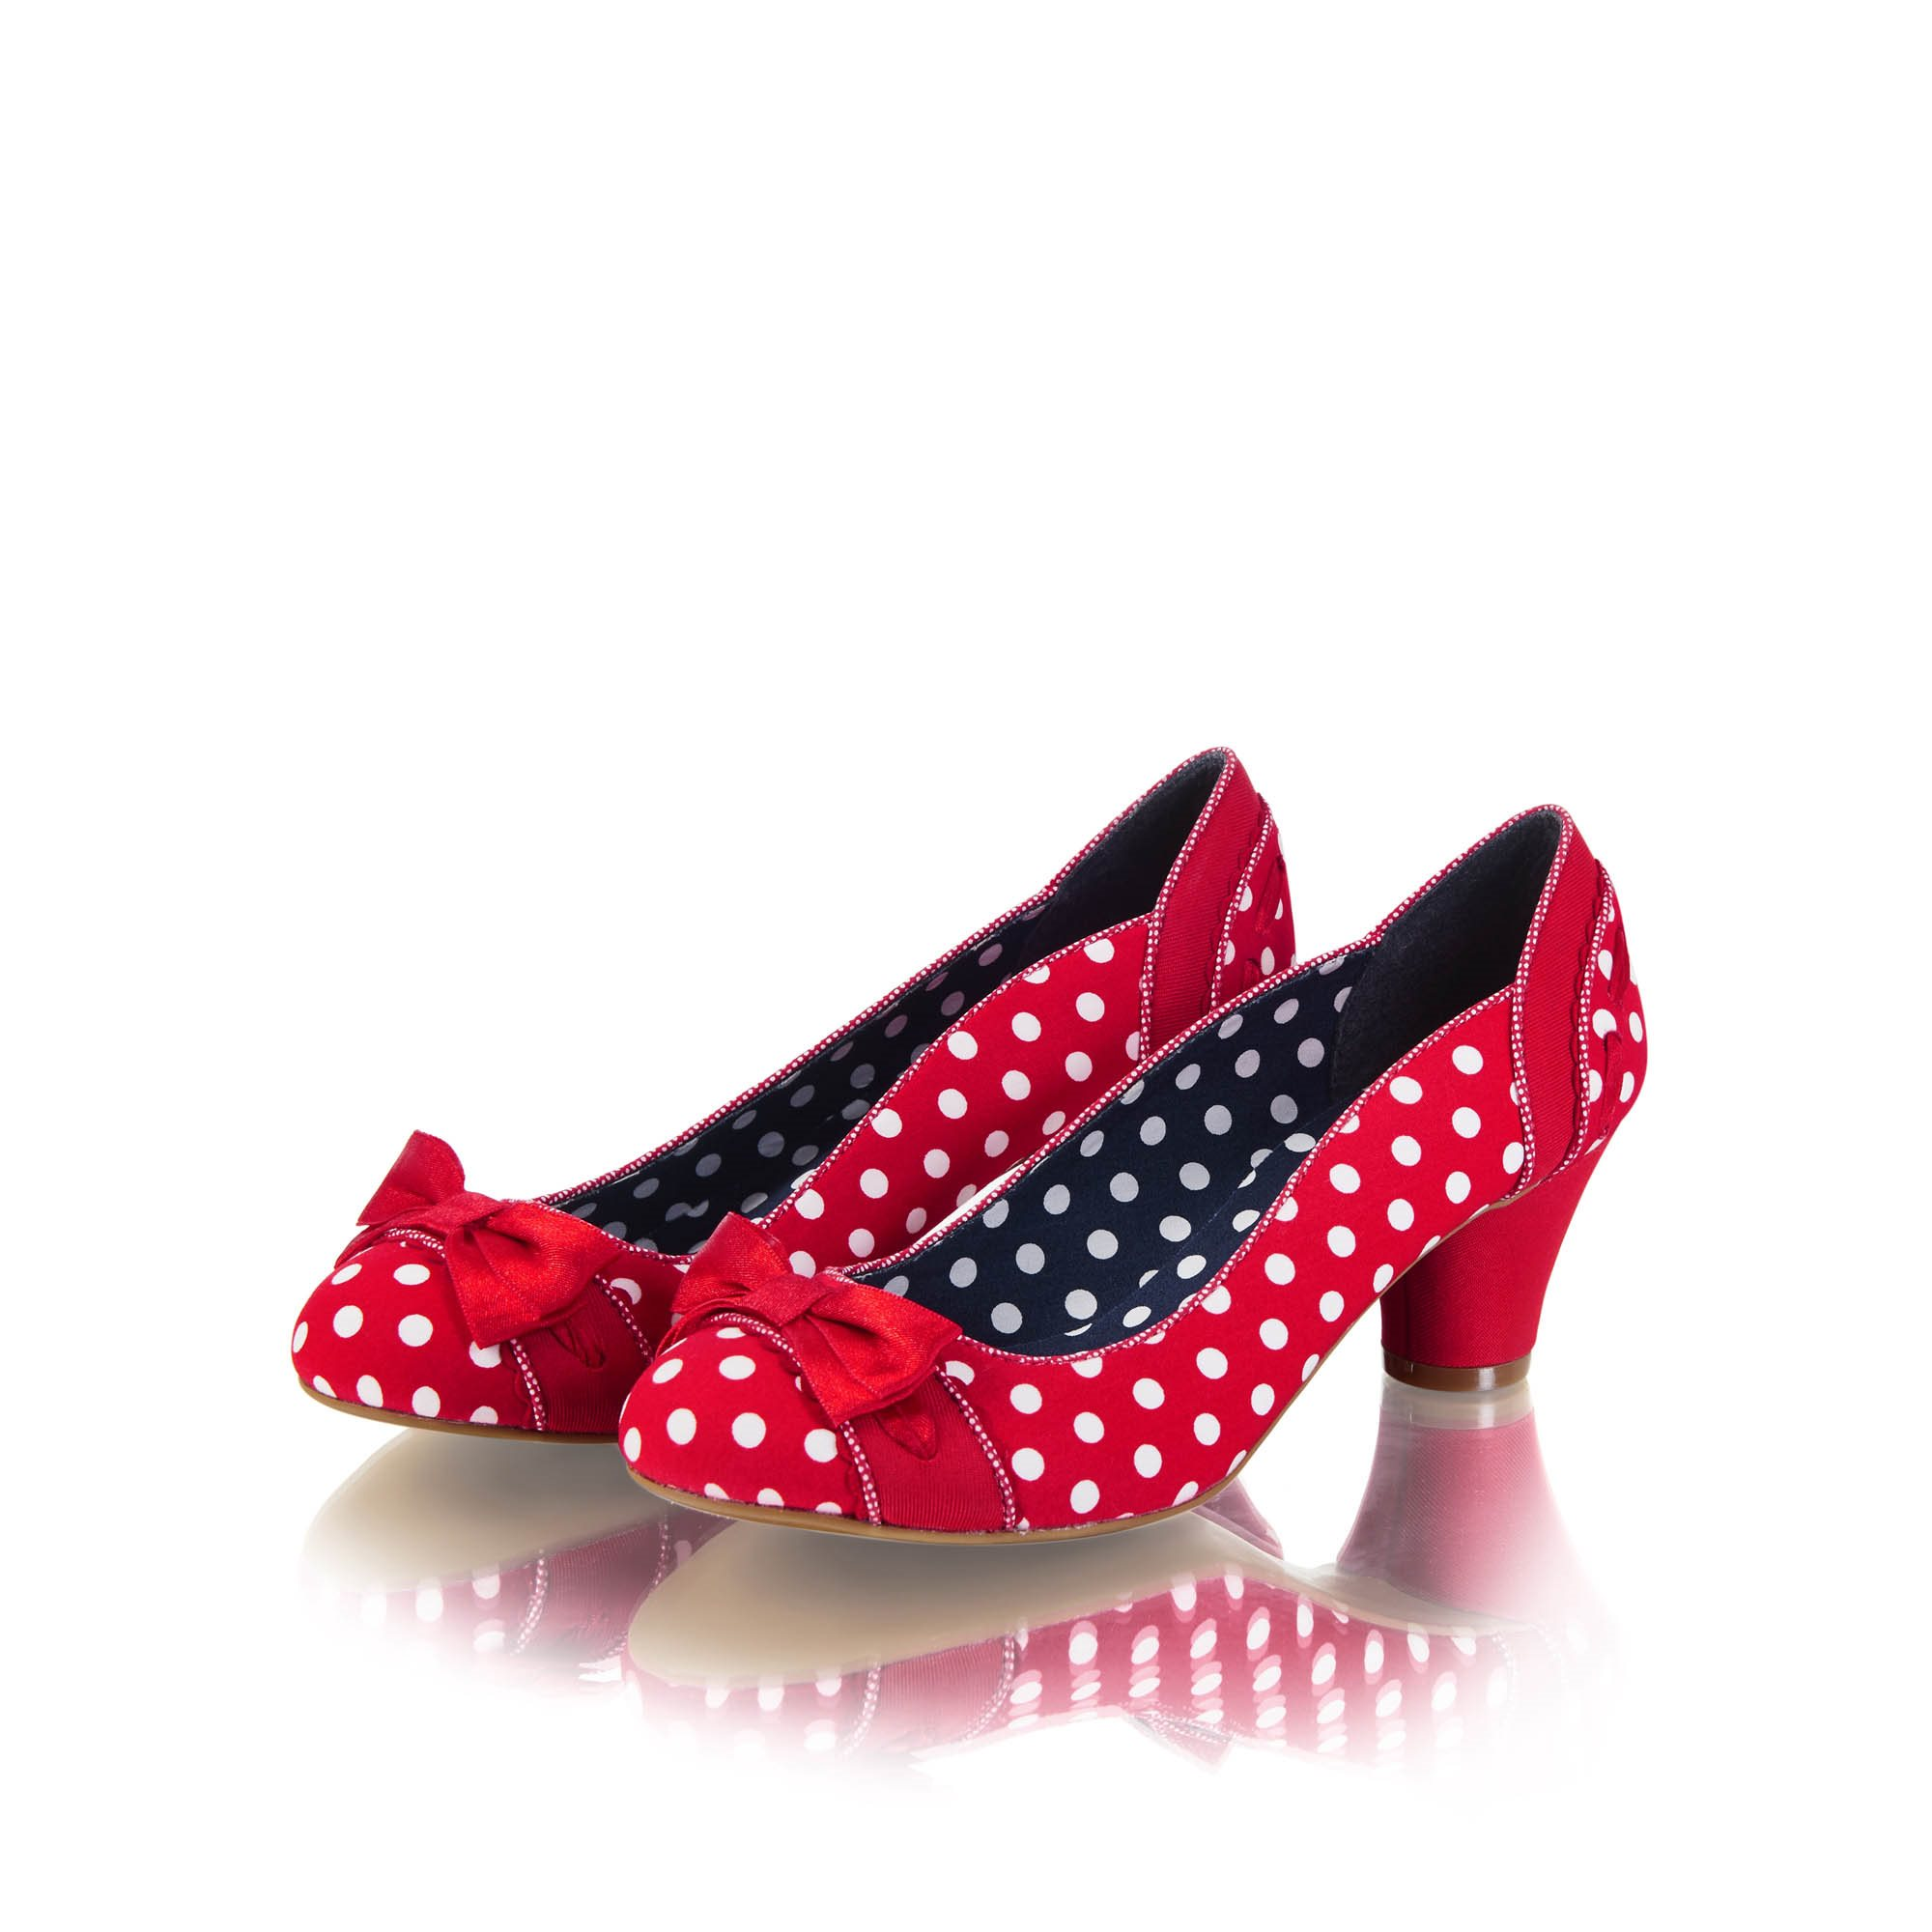 Ruby Shoo Hayley Red Polka Dot Shoes Size 3 HALF PRICE